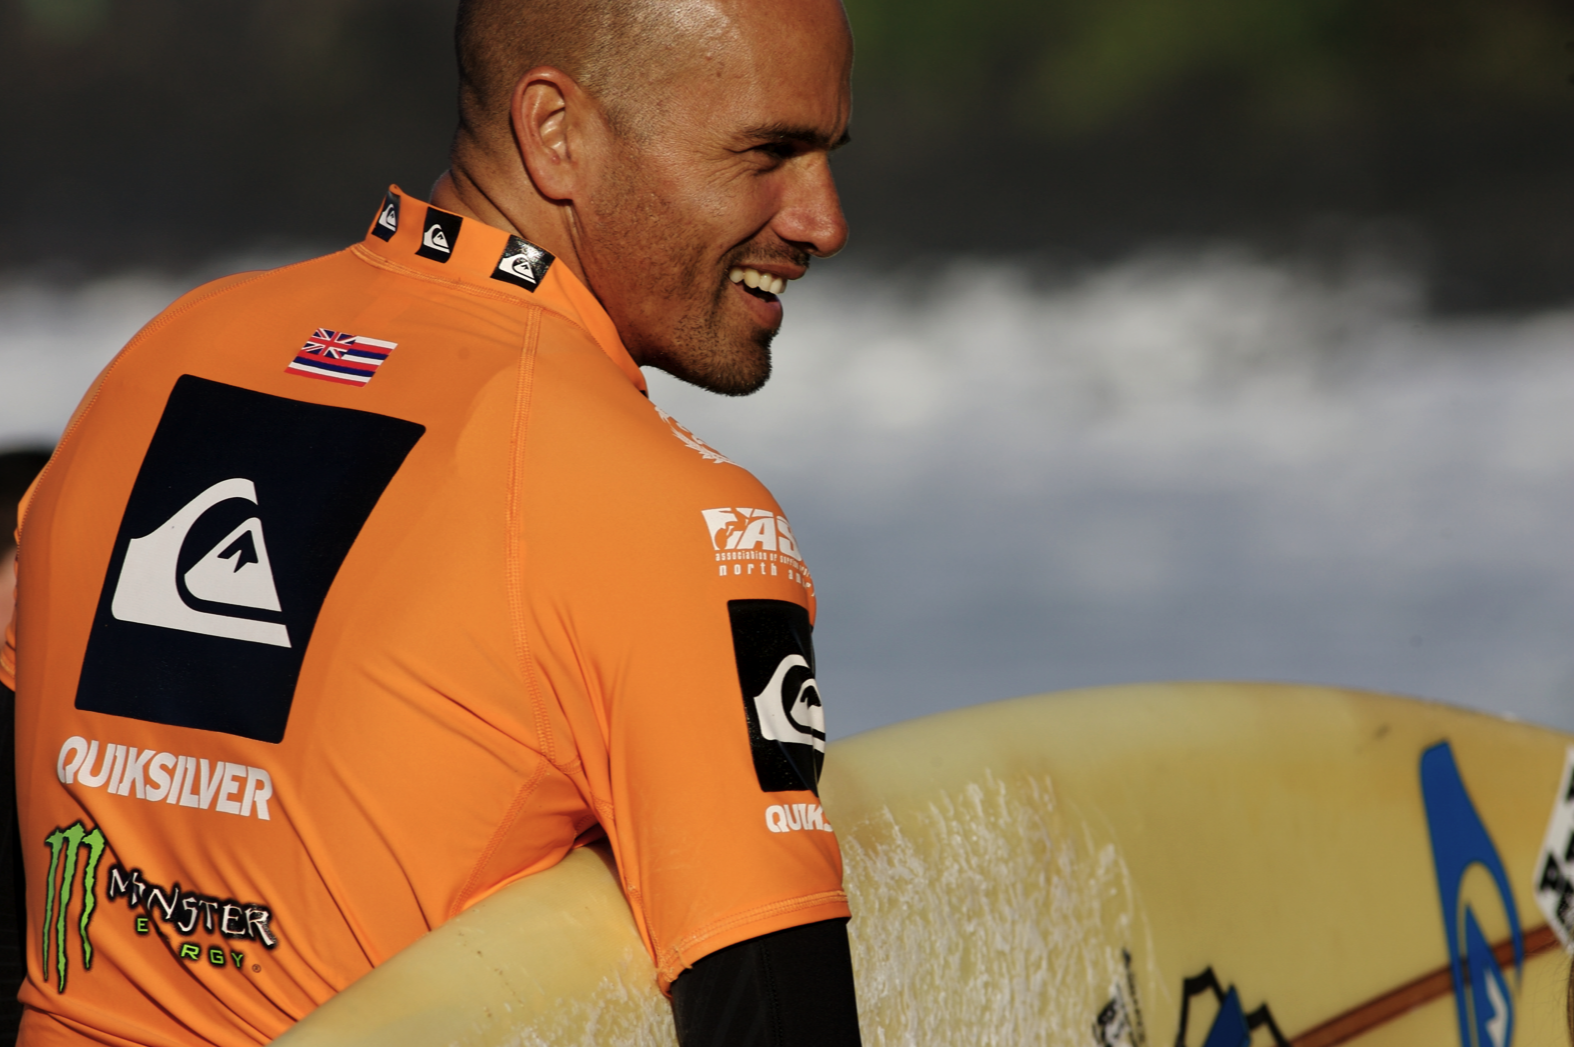 Mr. Kelly Slater